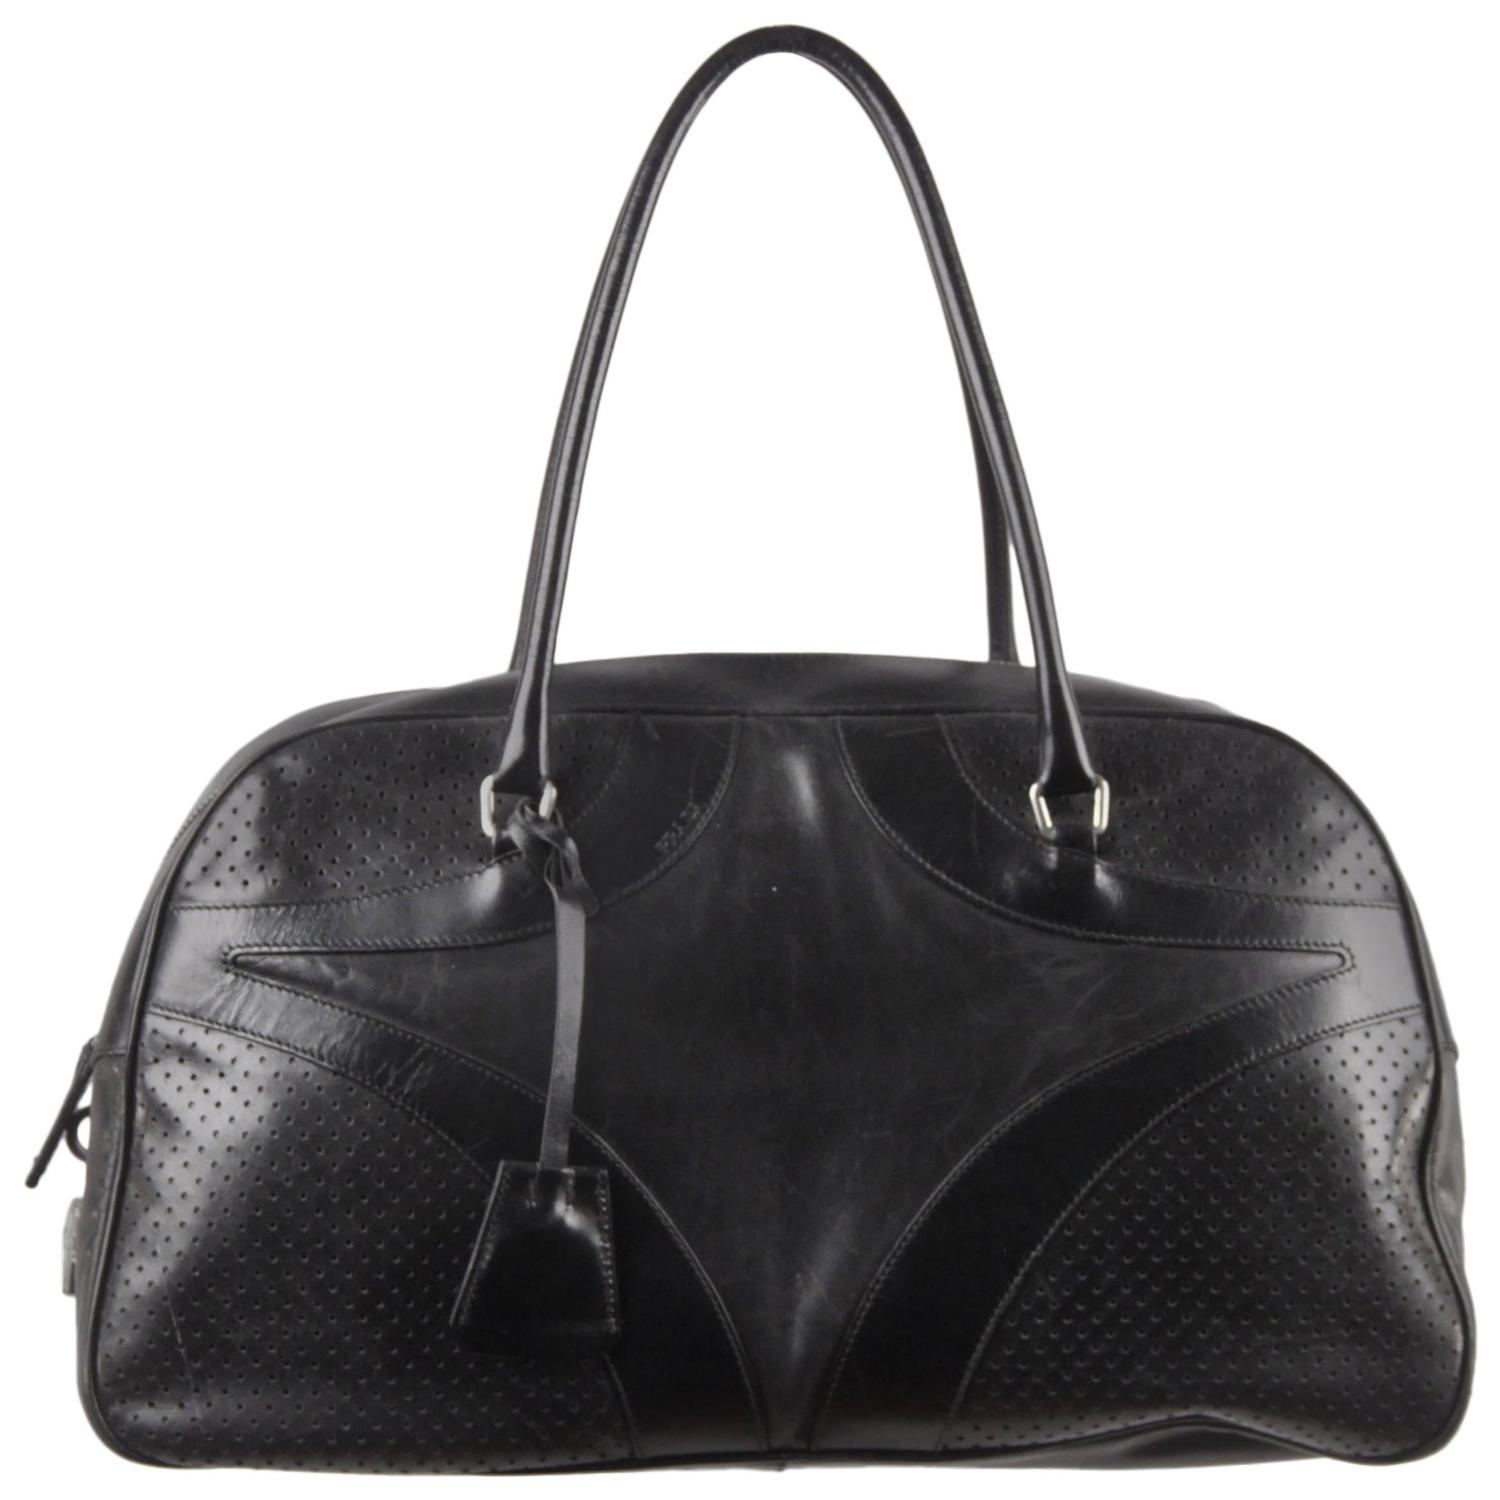 prada ostrich leather handbag